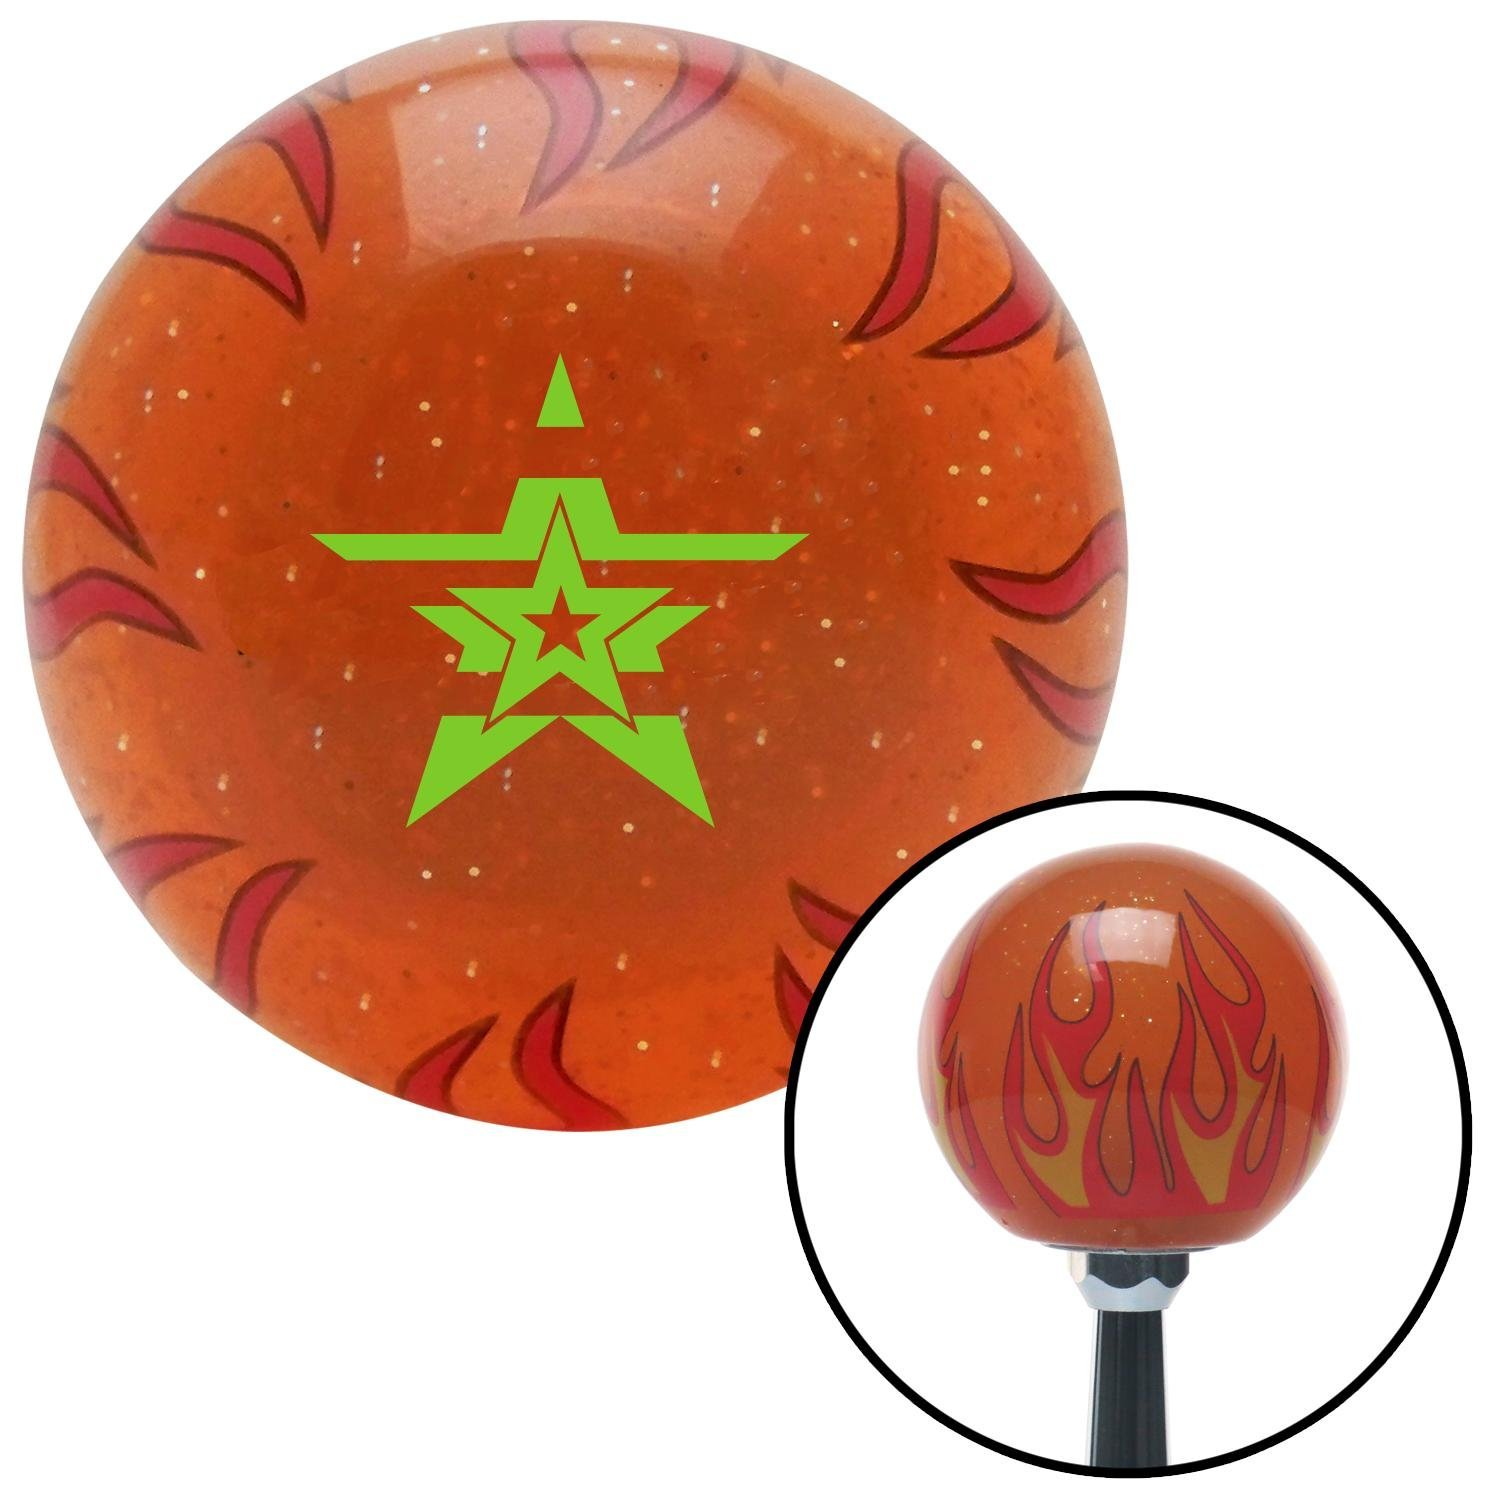 American Shifter 255934 Orange Flame Metal Flake Shift Knob with M16 x 1.5 Insert Green Star in a Star in a Star